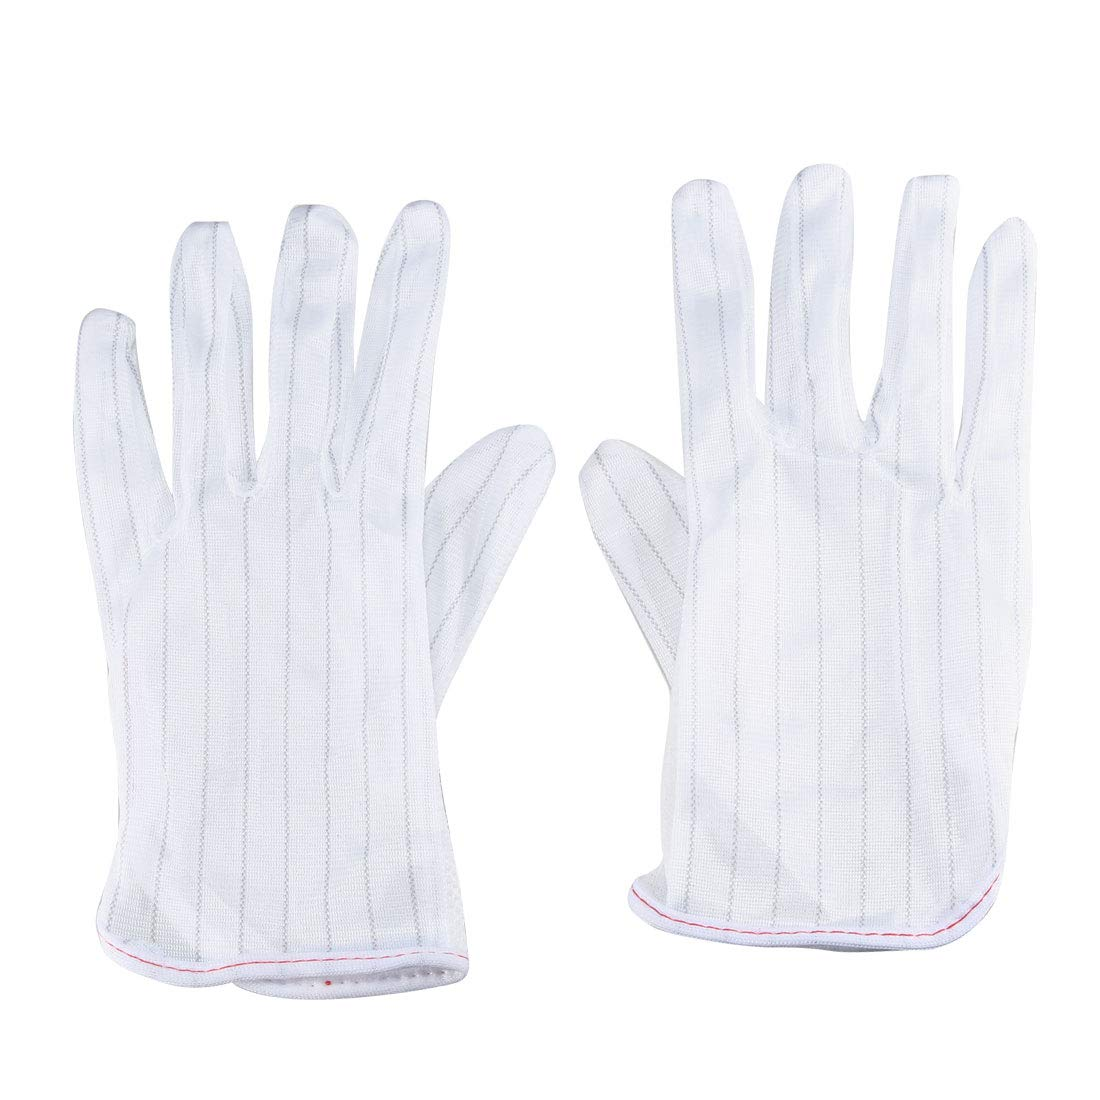 uxcell 10 Pairs White Full Finger Stripes Pattern Anti-static Working Gloves